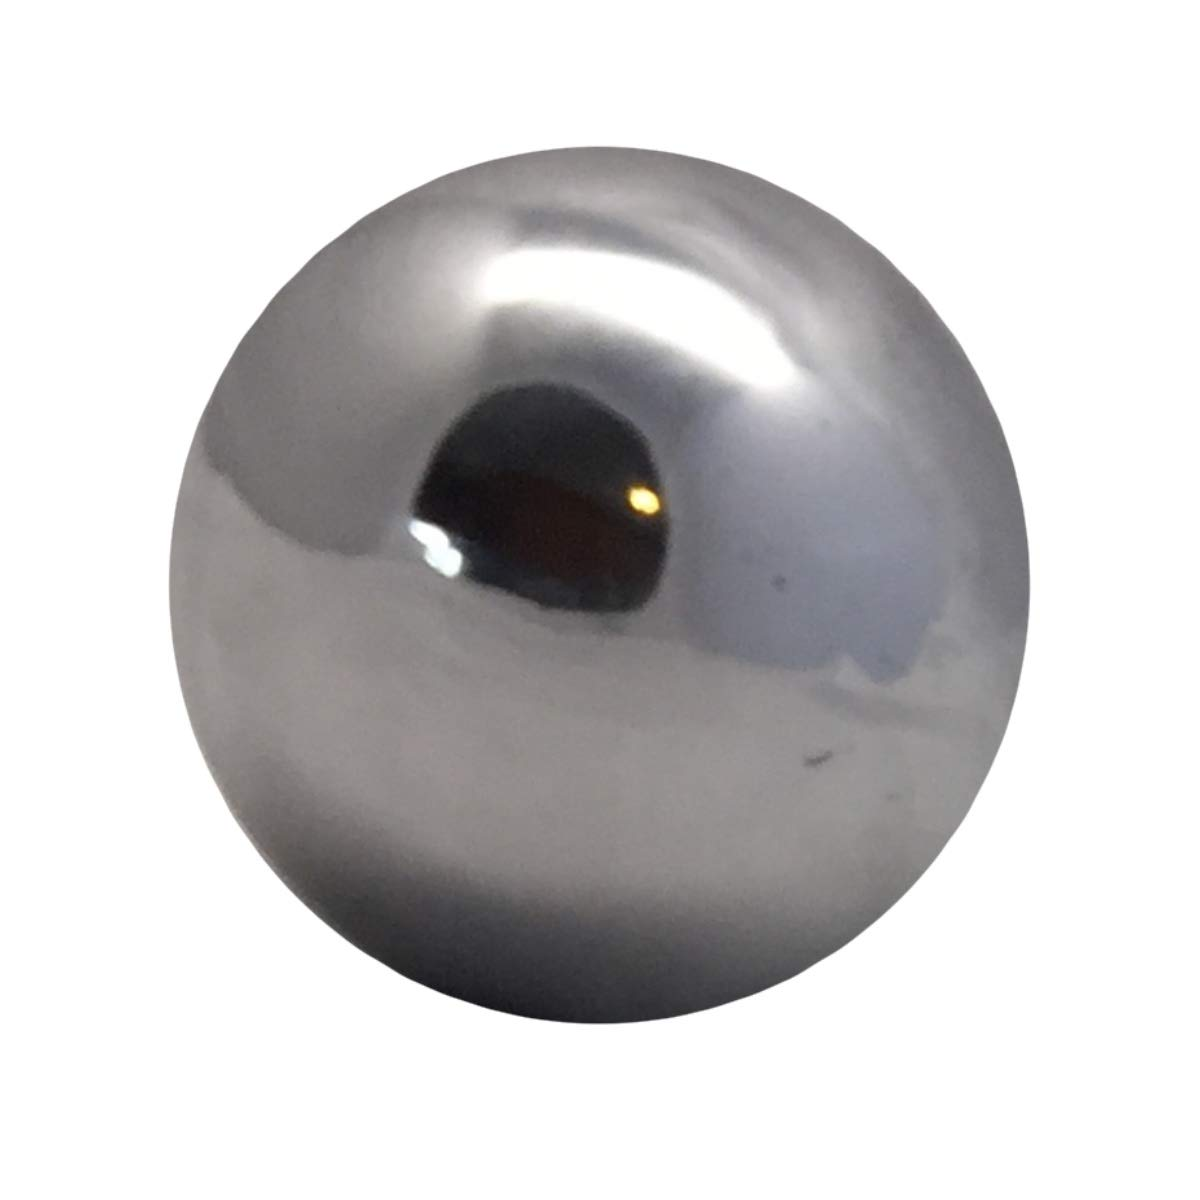 London Magic Works Acrylic Balls for Contact Juggling- Perform Like a pro (Steel Chrome, 60mm)